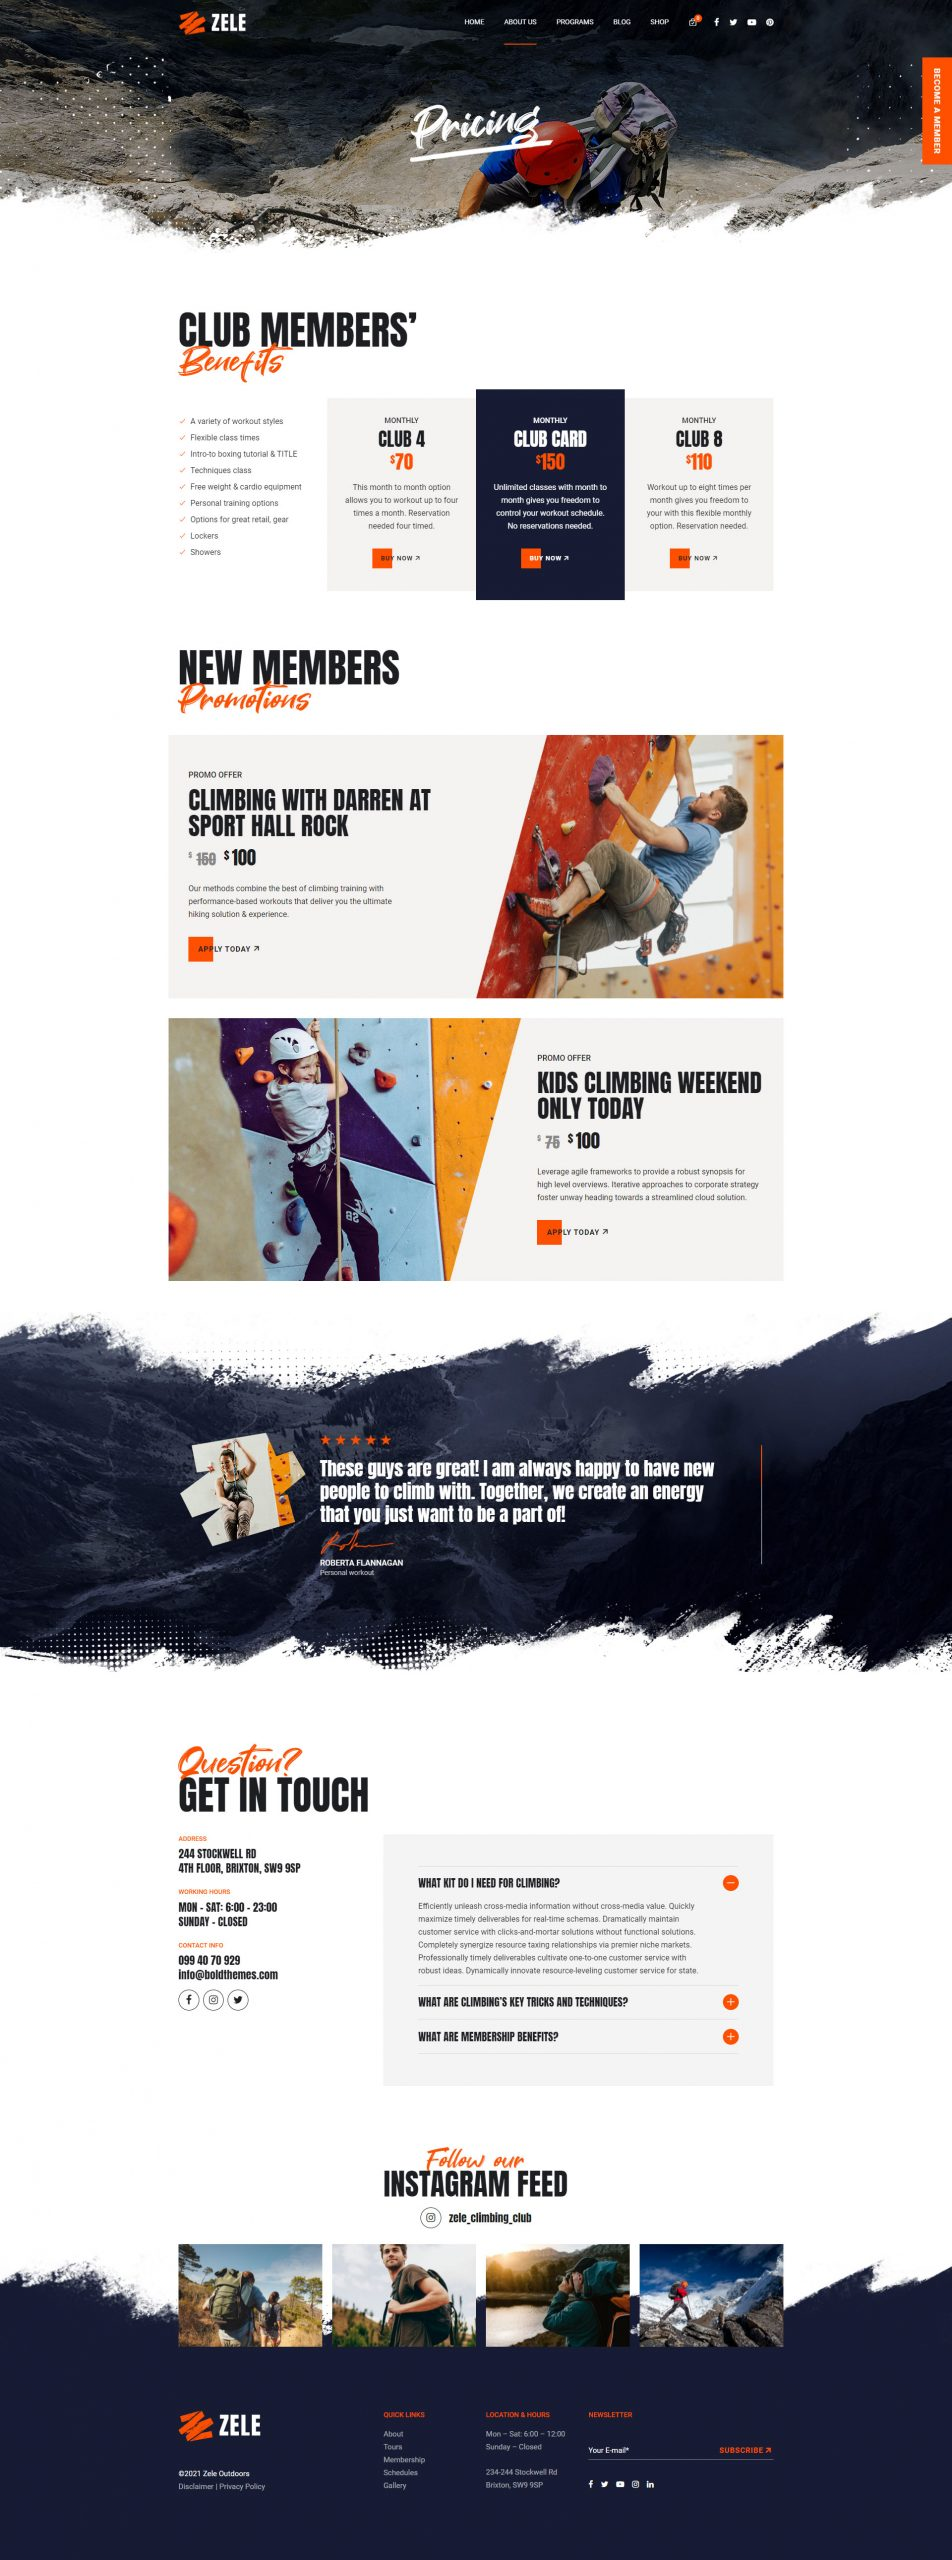 http://zele.bold-themes.com/wp-content/uploads/2021/07/Rough-Pricing-scaled-1.jpg